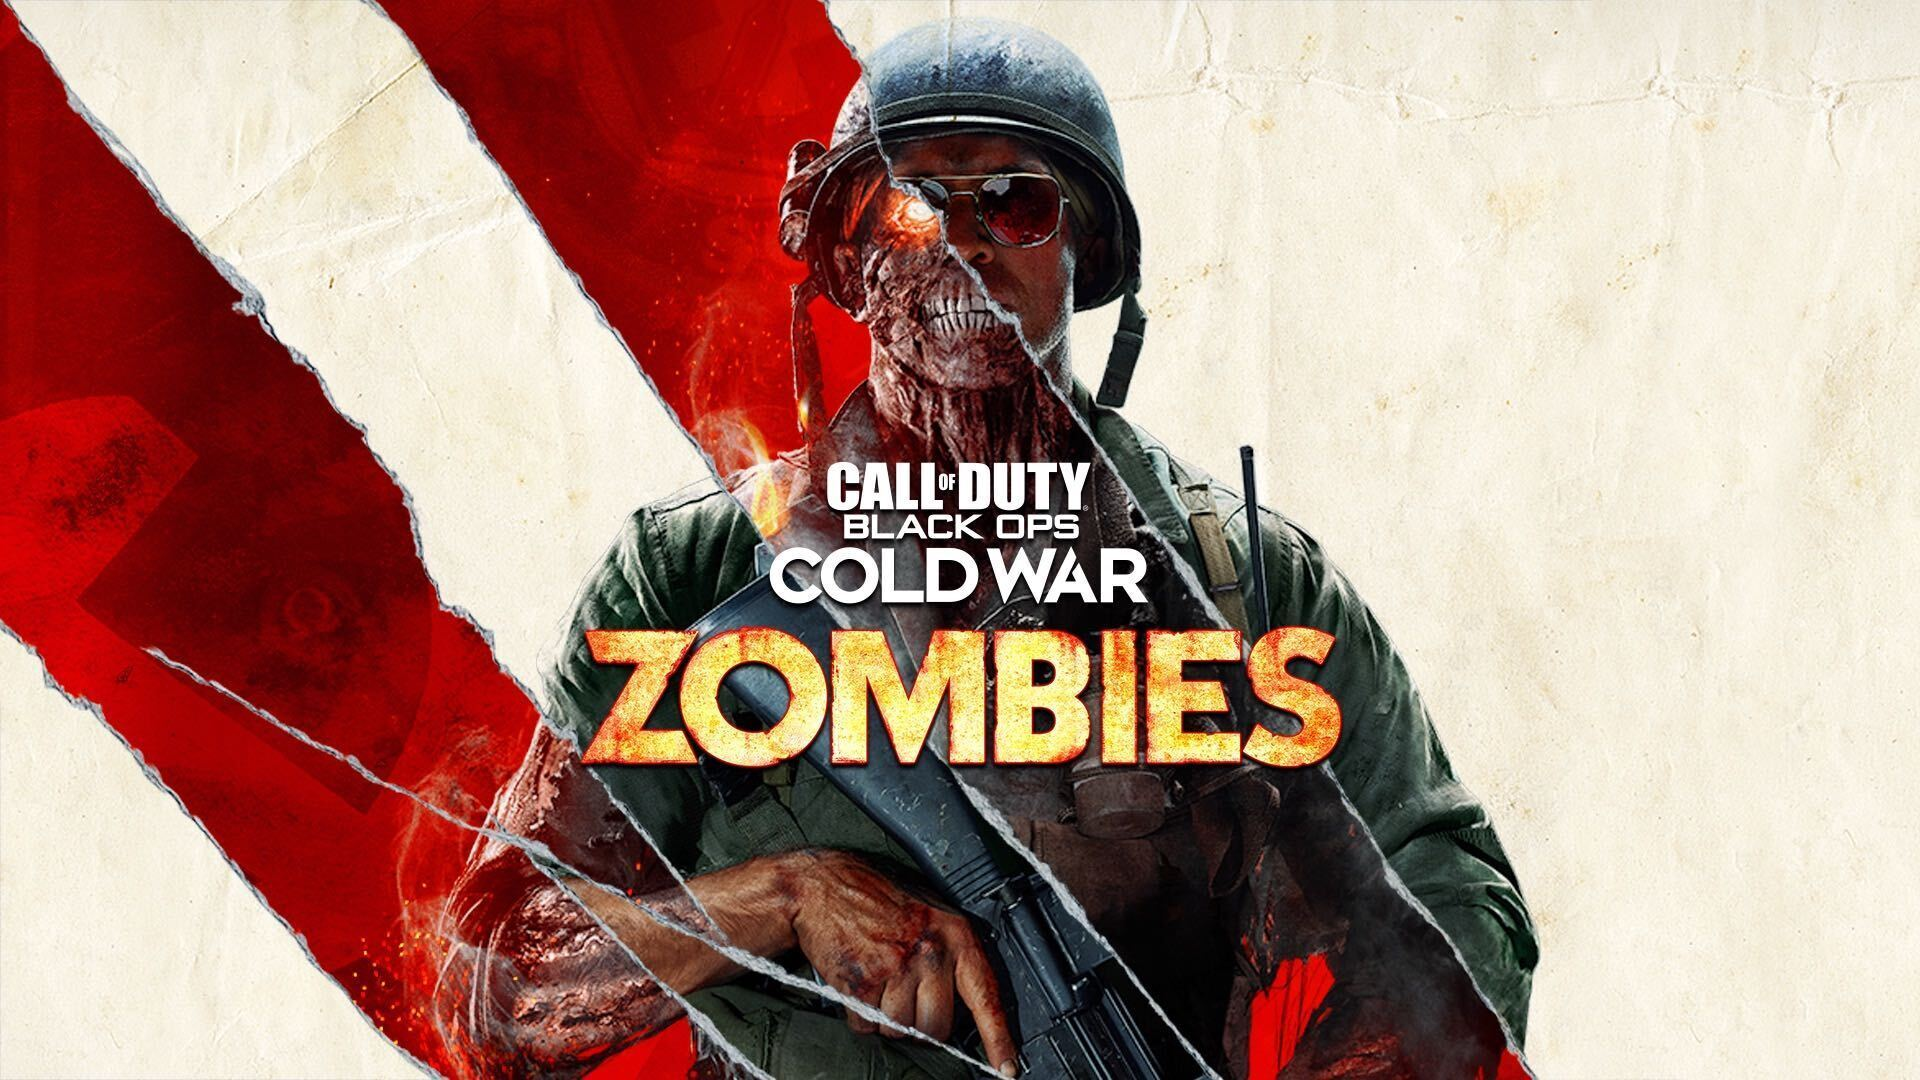 Black Ops Cold War Zombies Confirmed, Reveal Trailer Coming On September 30